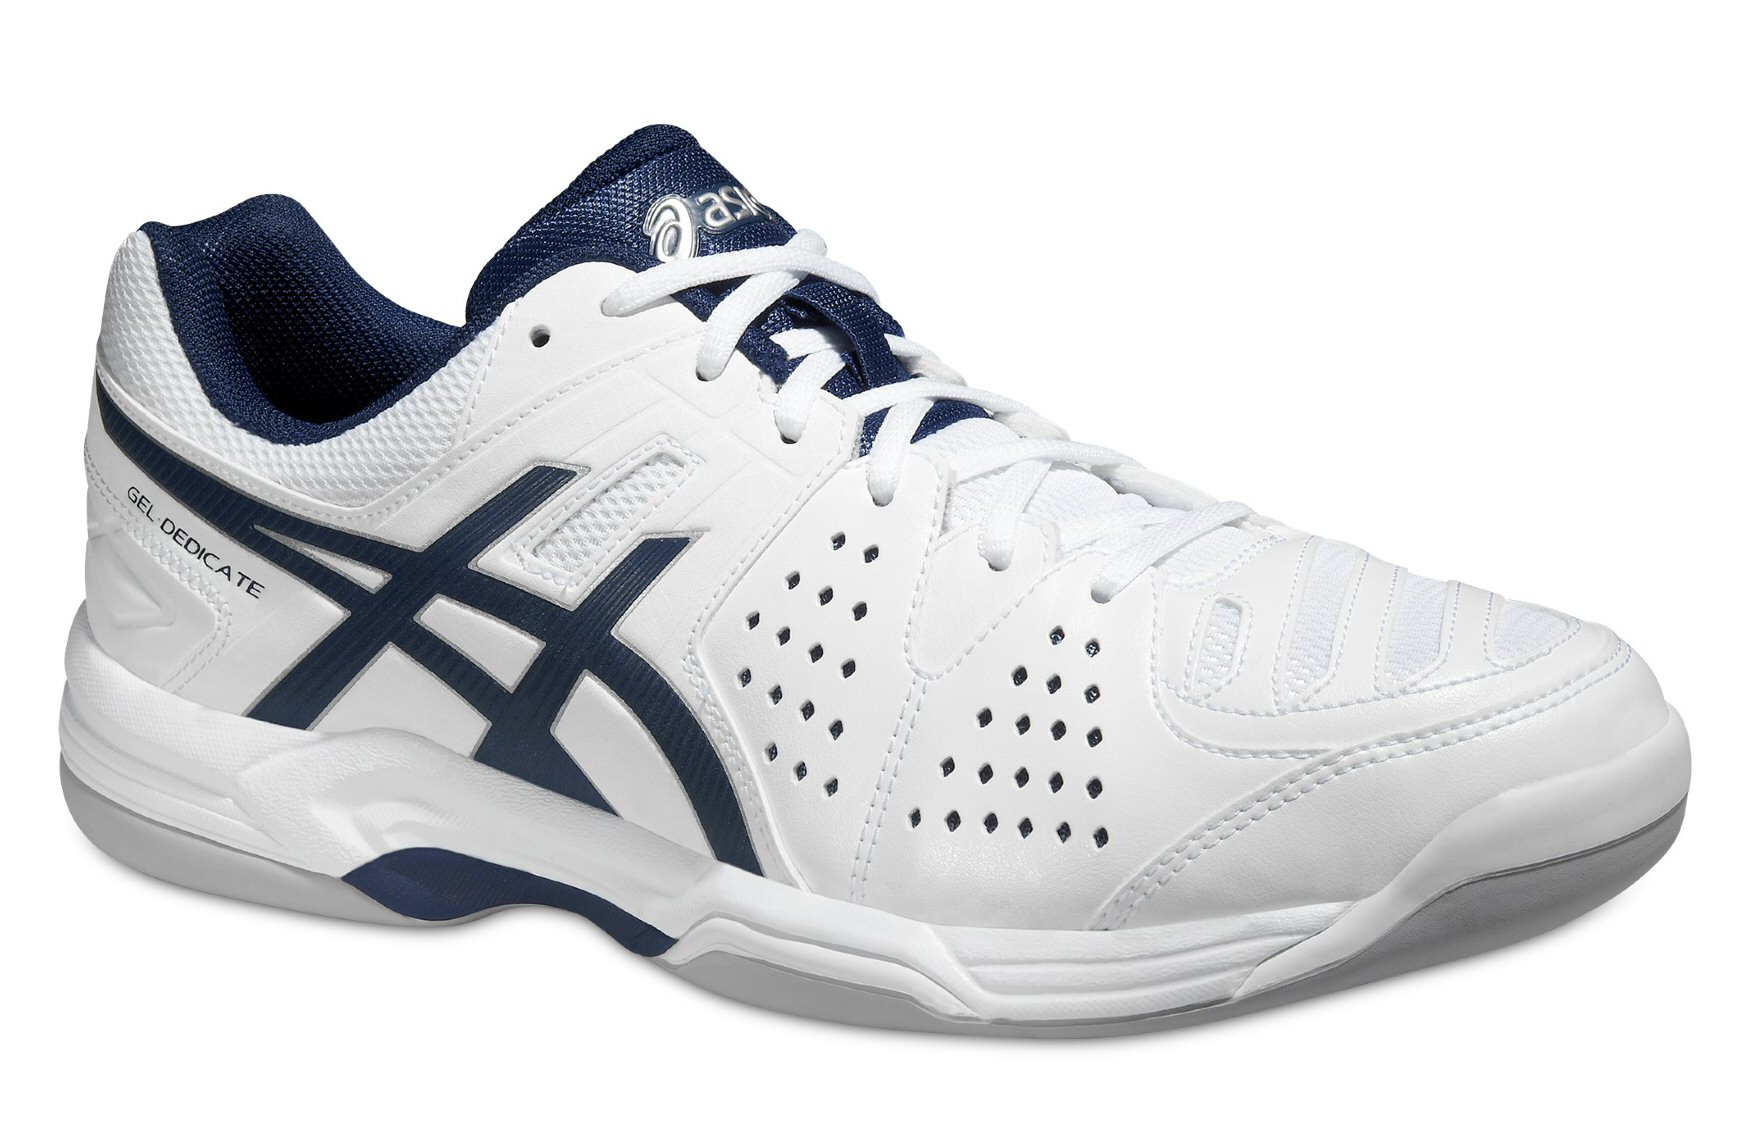 asics gel dedicate 4 indoor herren preisvergleich tennisschuh g nstig kaufen bei. Black Bedroom Furniture Sets. Home Design Ideas